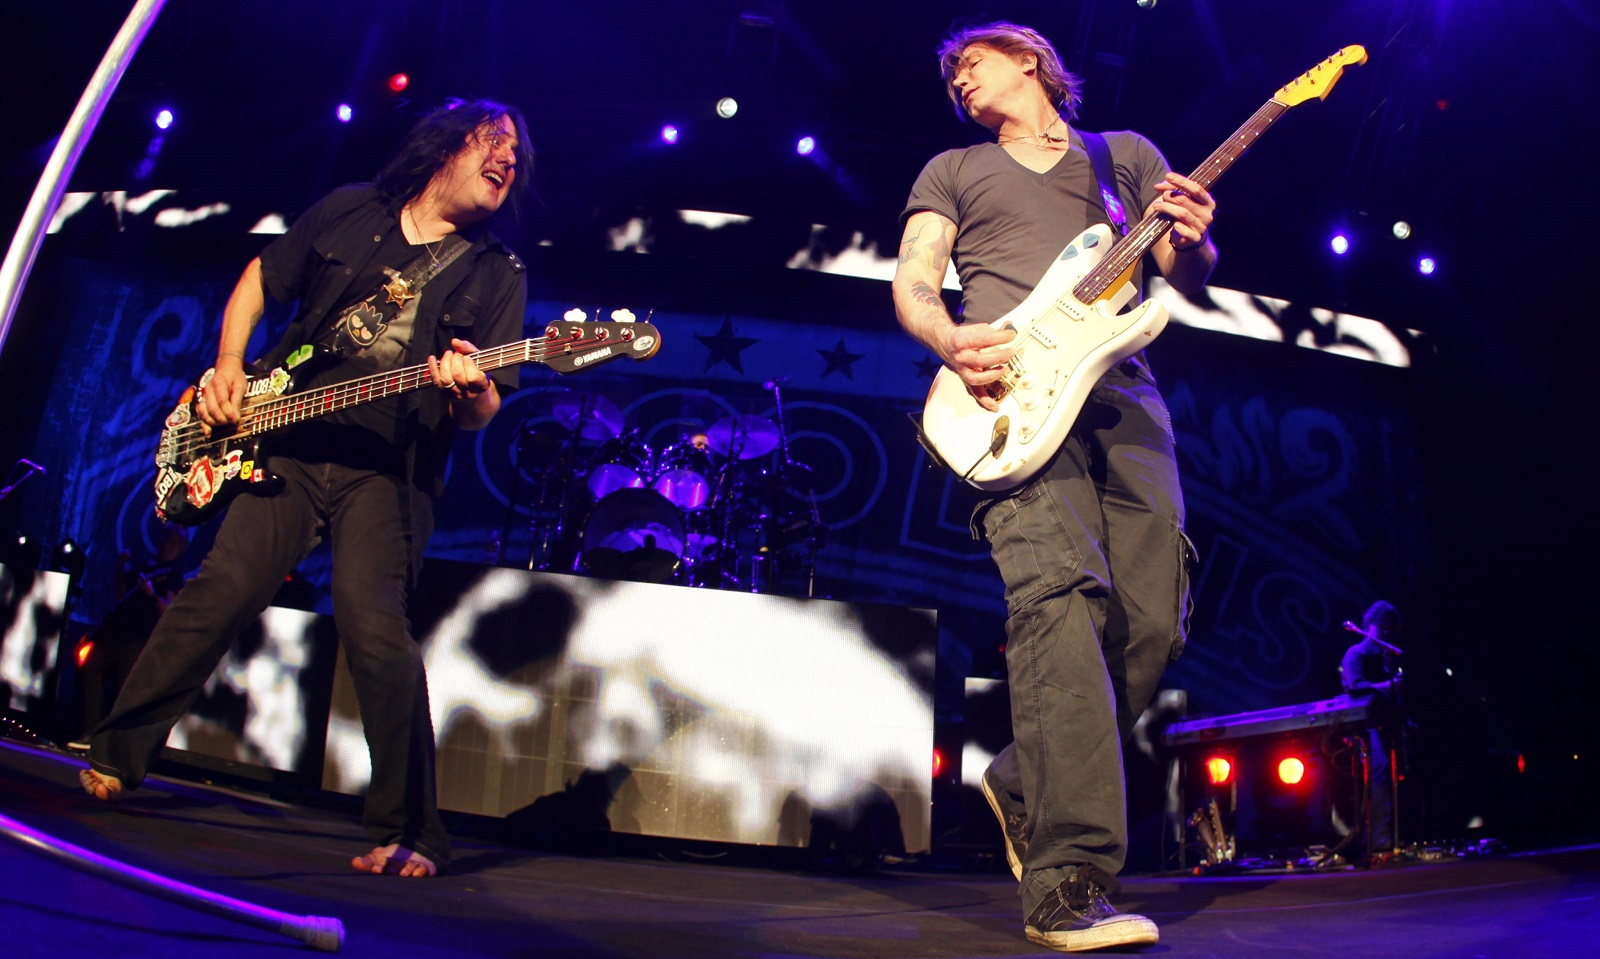 Robby Takac, left, and Johnny Rzeznik return to Darien Lake this summer for a Goo Goo Dolls homecoming show. (Harry Scull Jr./Buffalo News file photo)